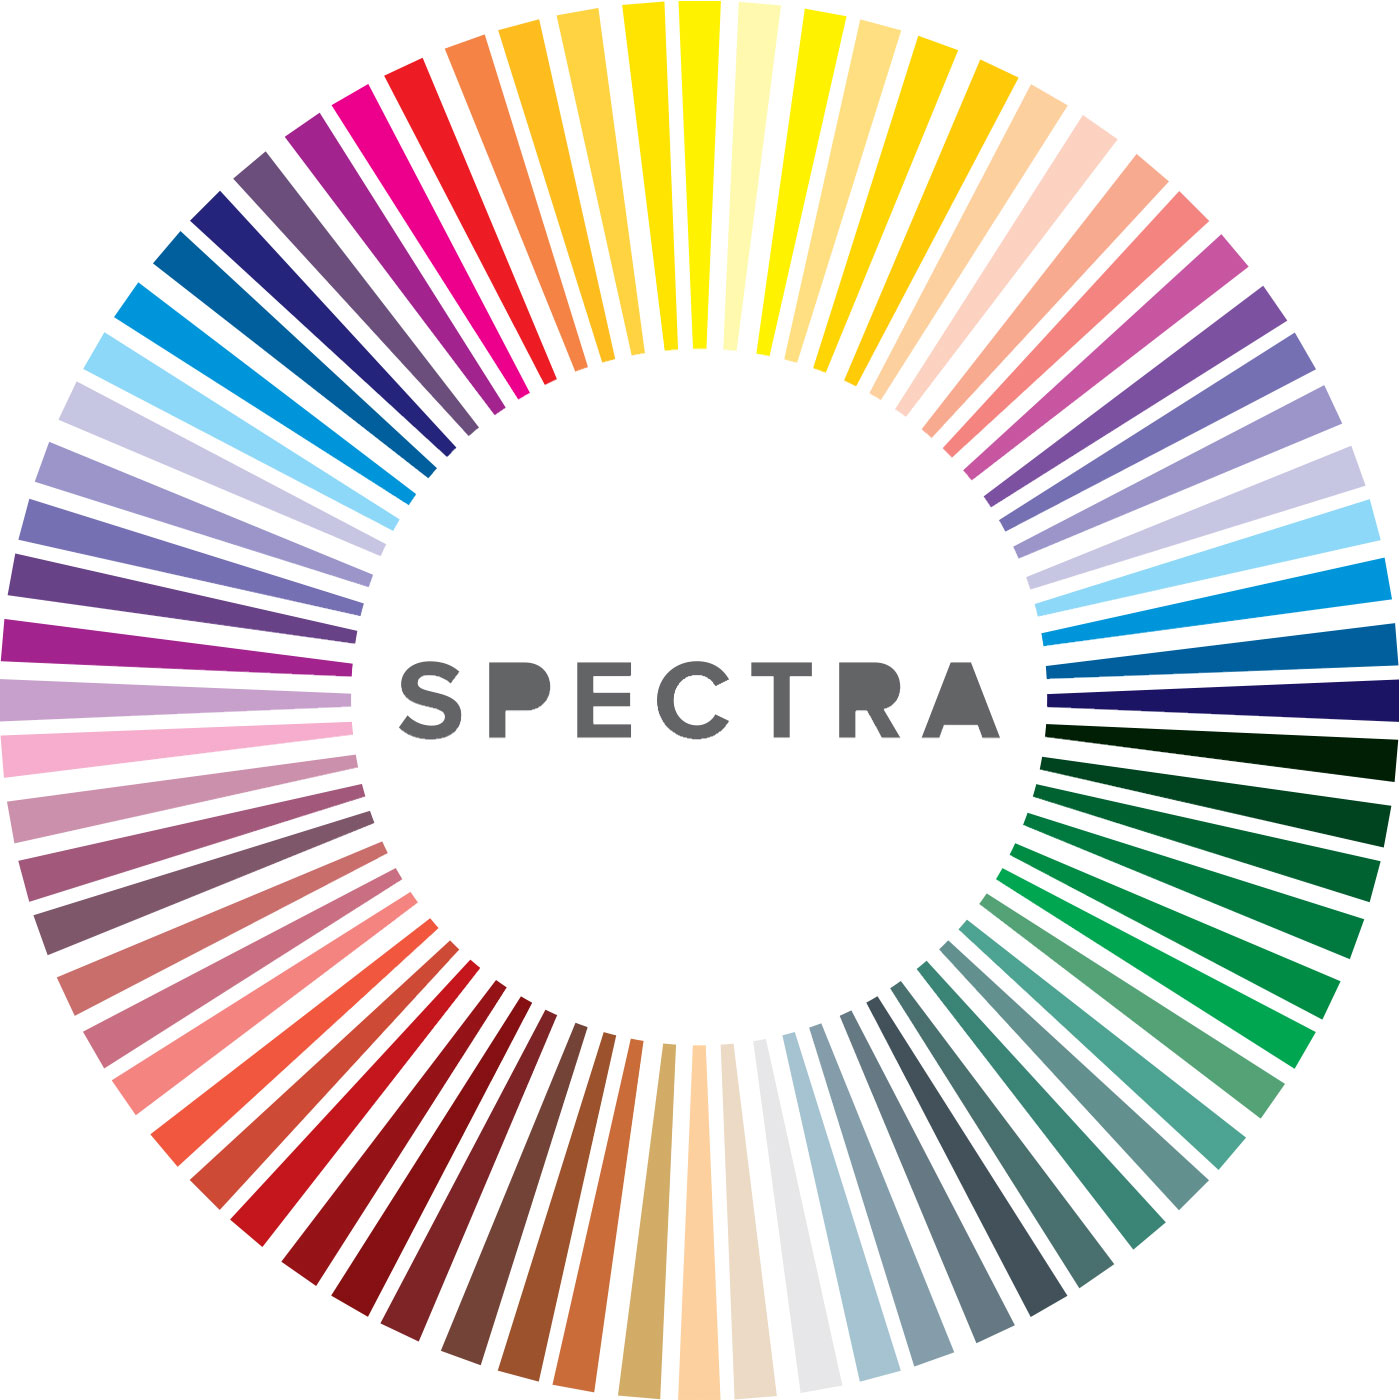 SPECTRA: Episode 1. It begins